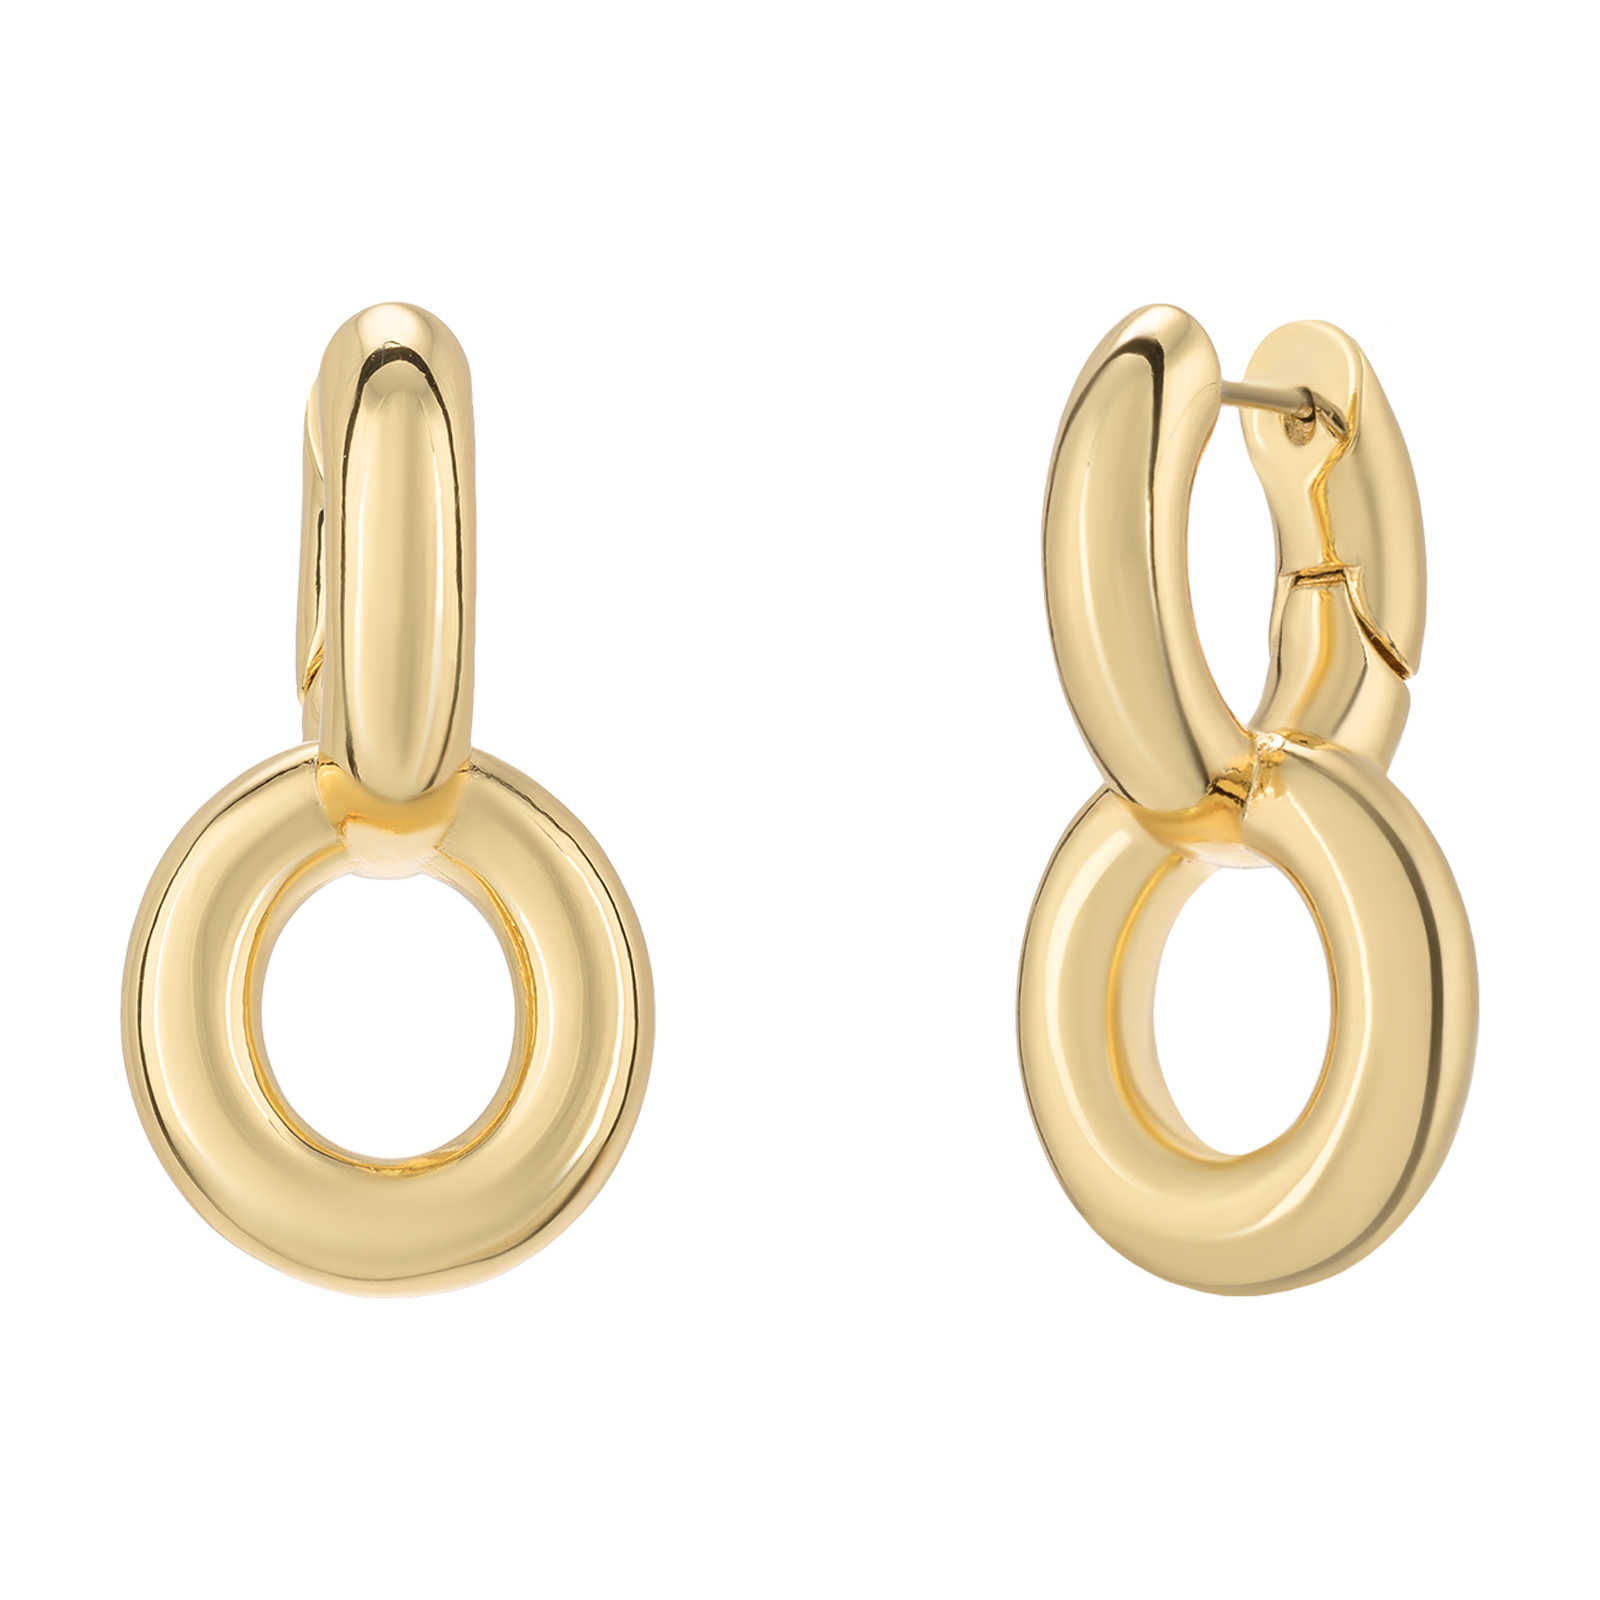 Golden earrings product photo